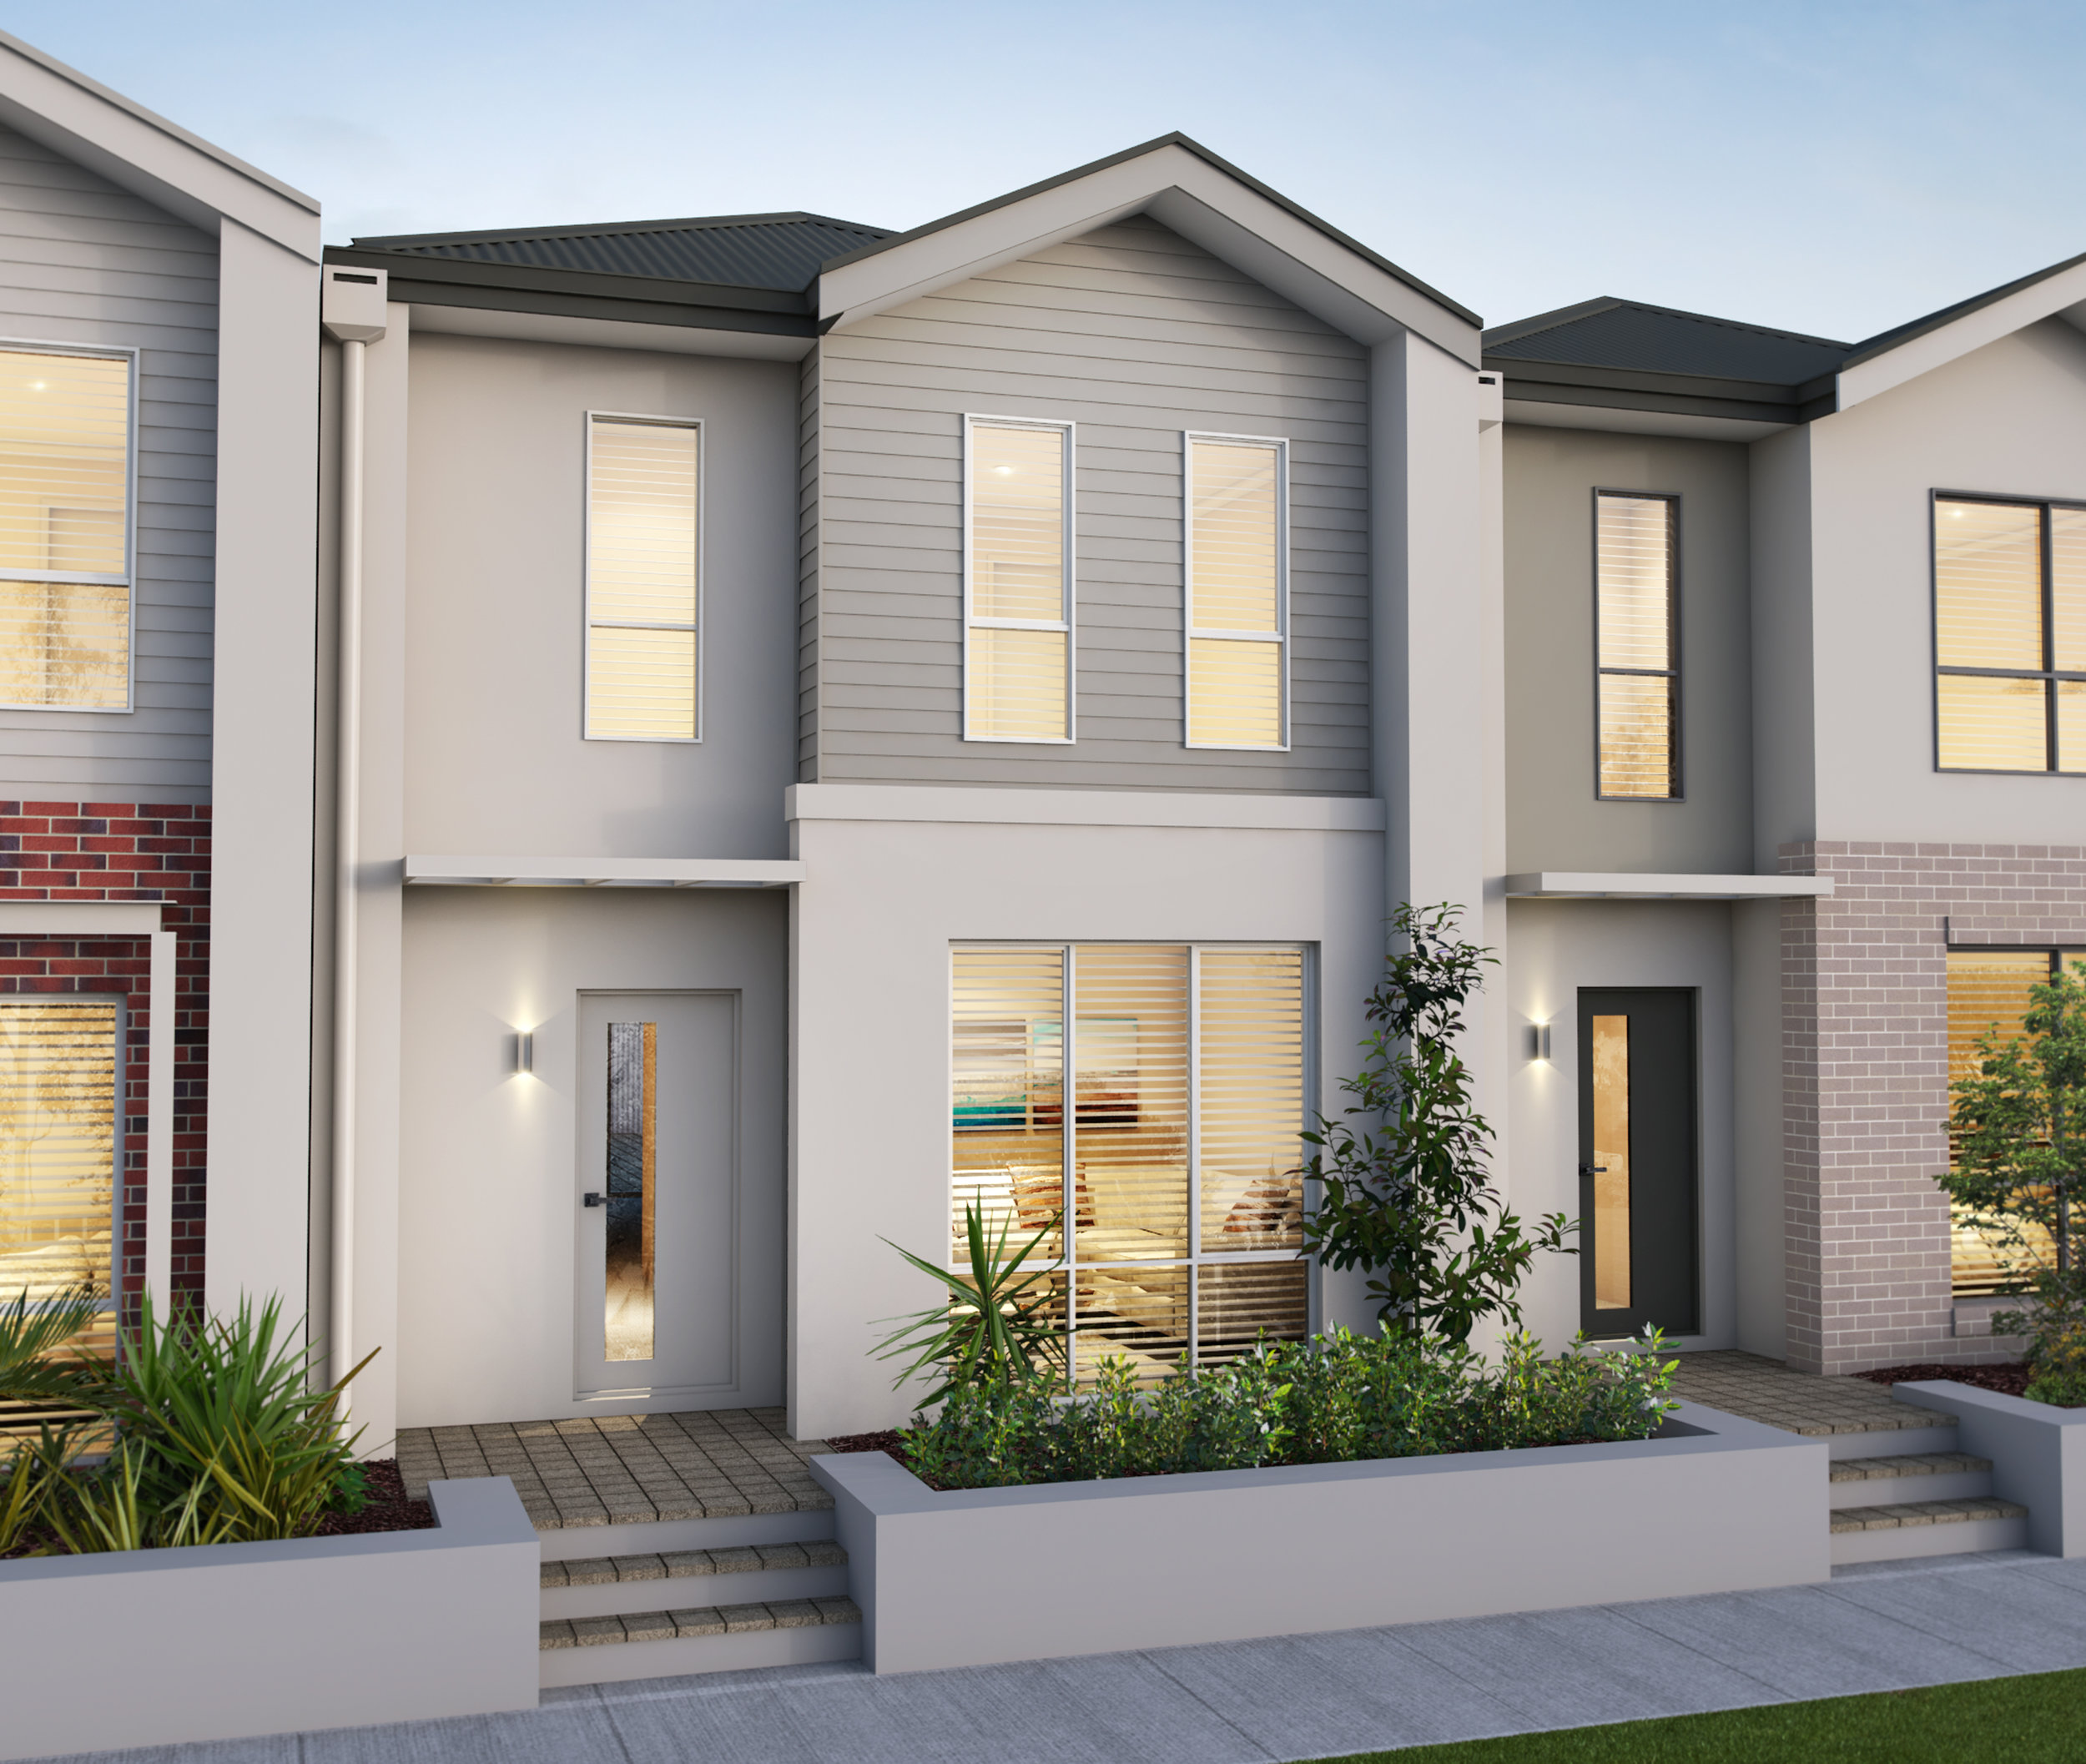 LOT 124 - FROM $451,250*4 Bed + 2 Bath + 2 Car